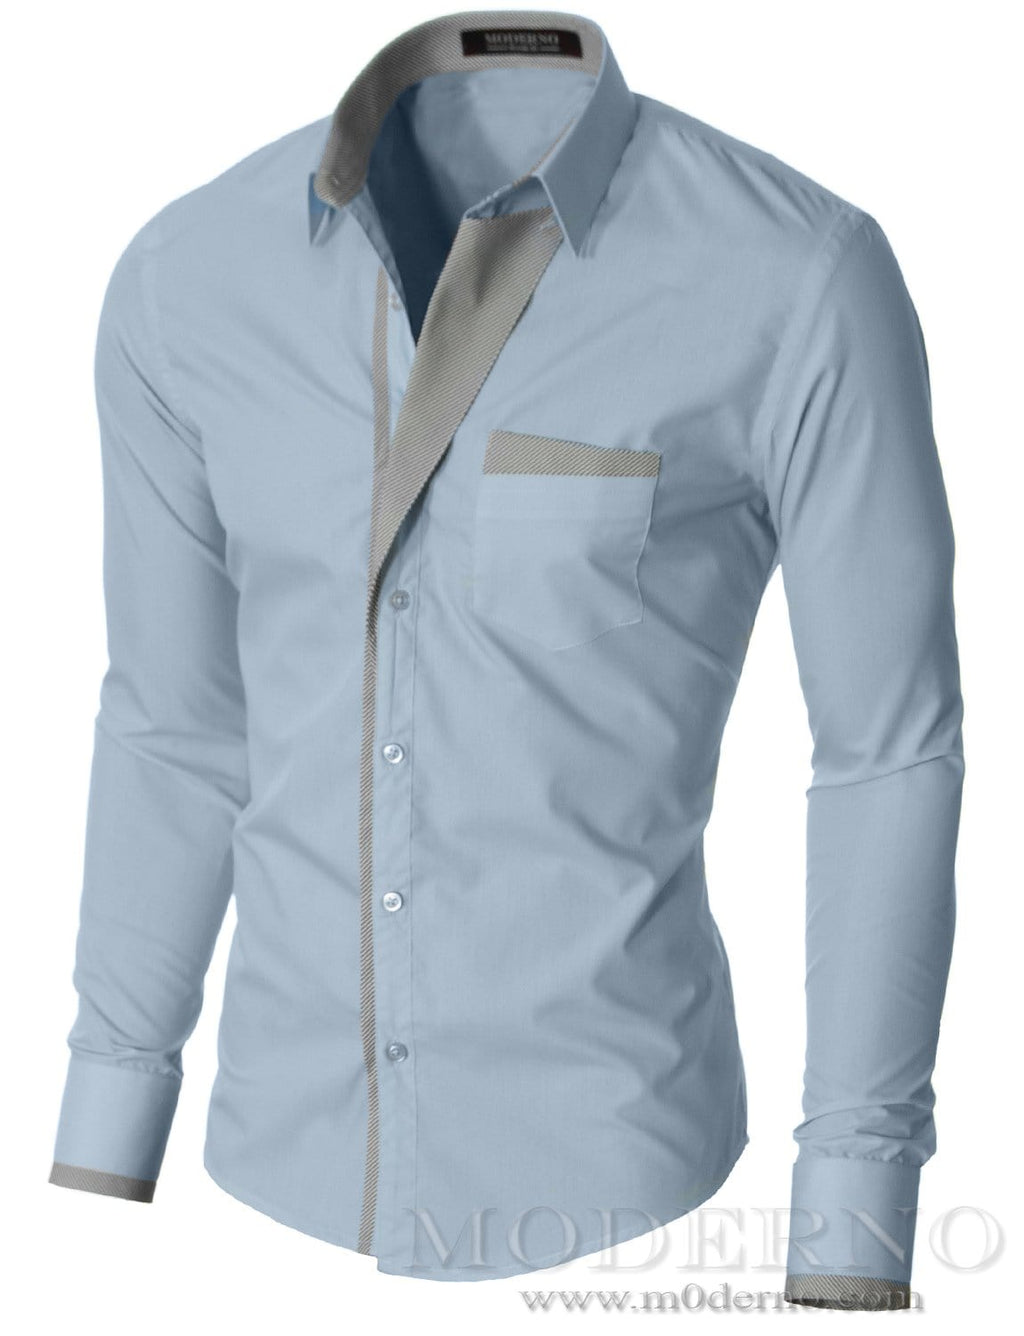 Mens slim fit button up long sleeve dress shirt sky (VGDS41LS) - MODERNO